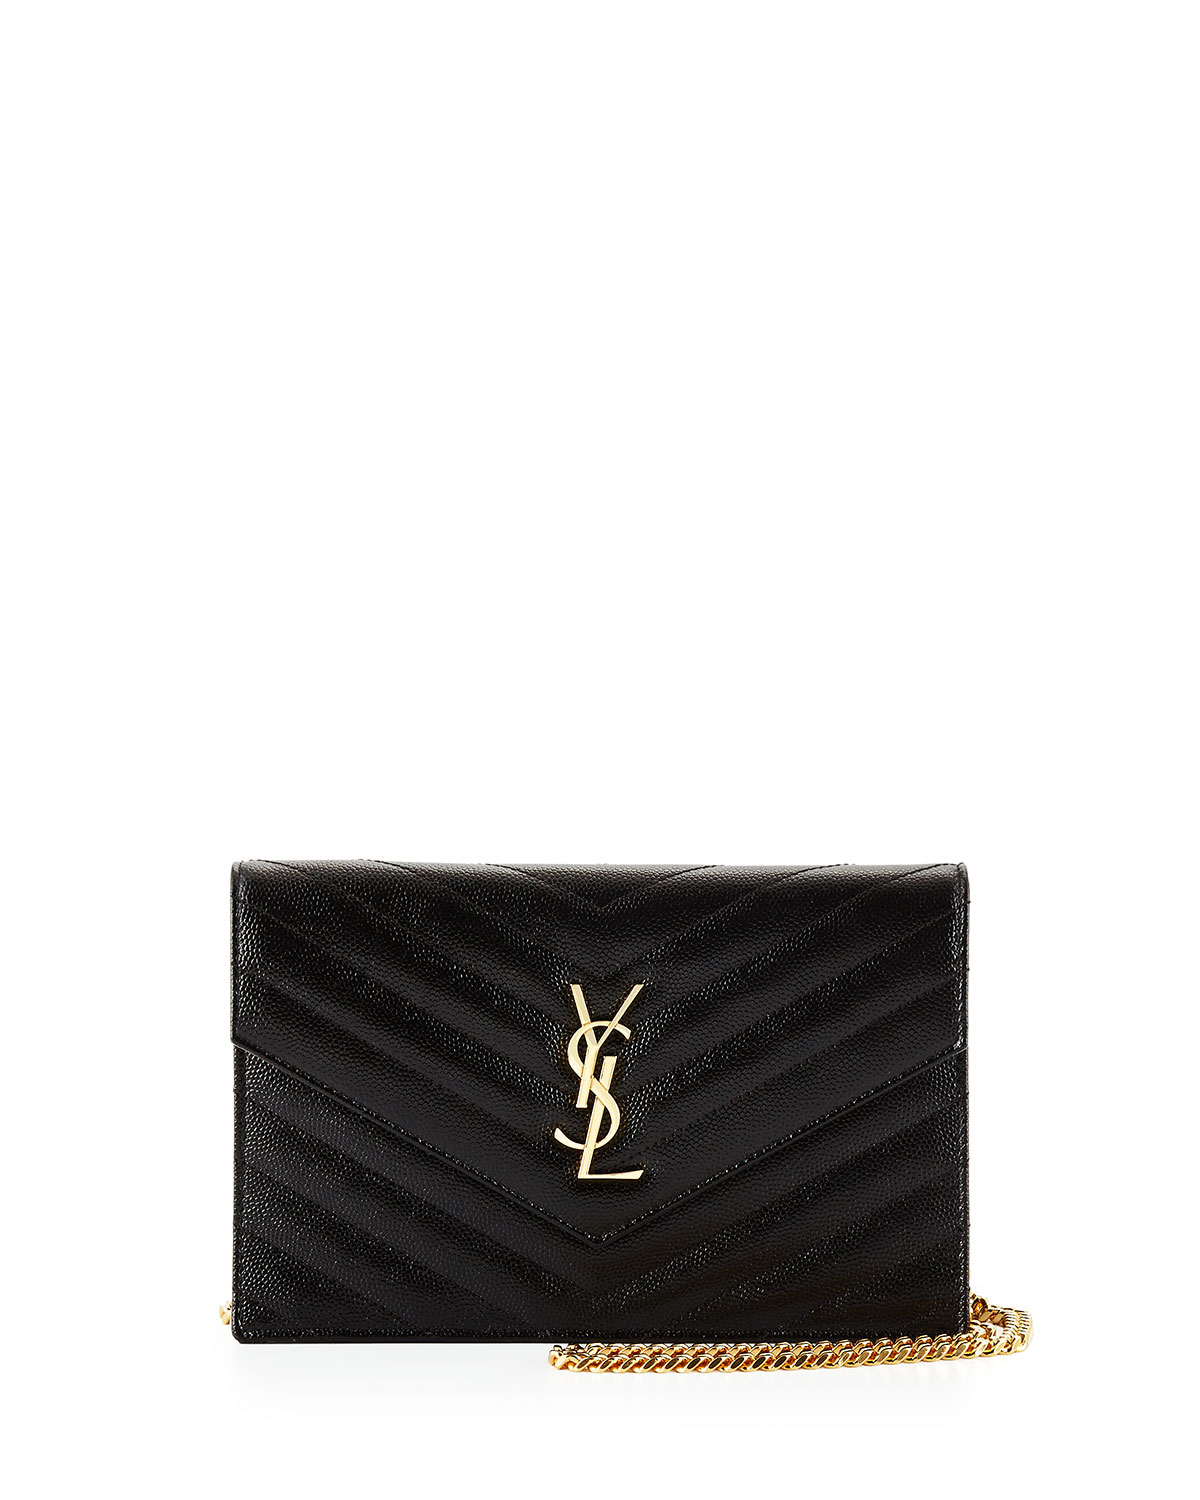 Monogram Matelasse Wallet on Chain, Black - Saint Laurent